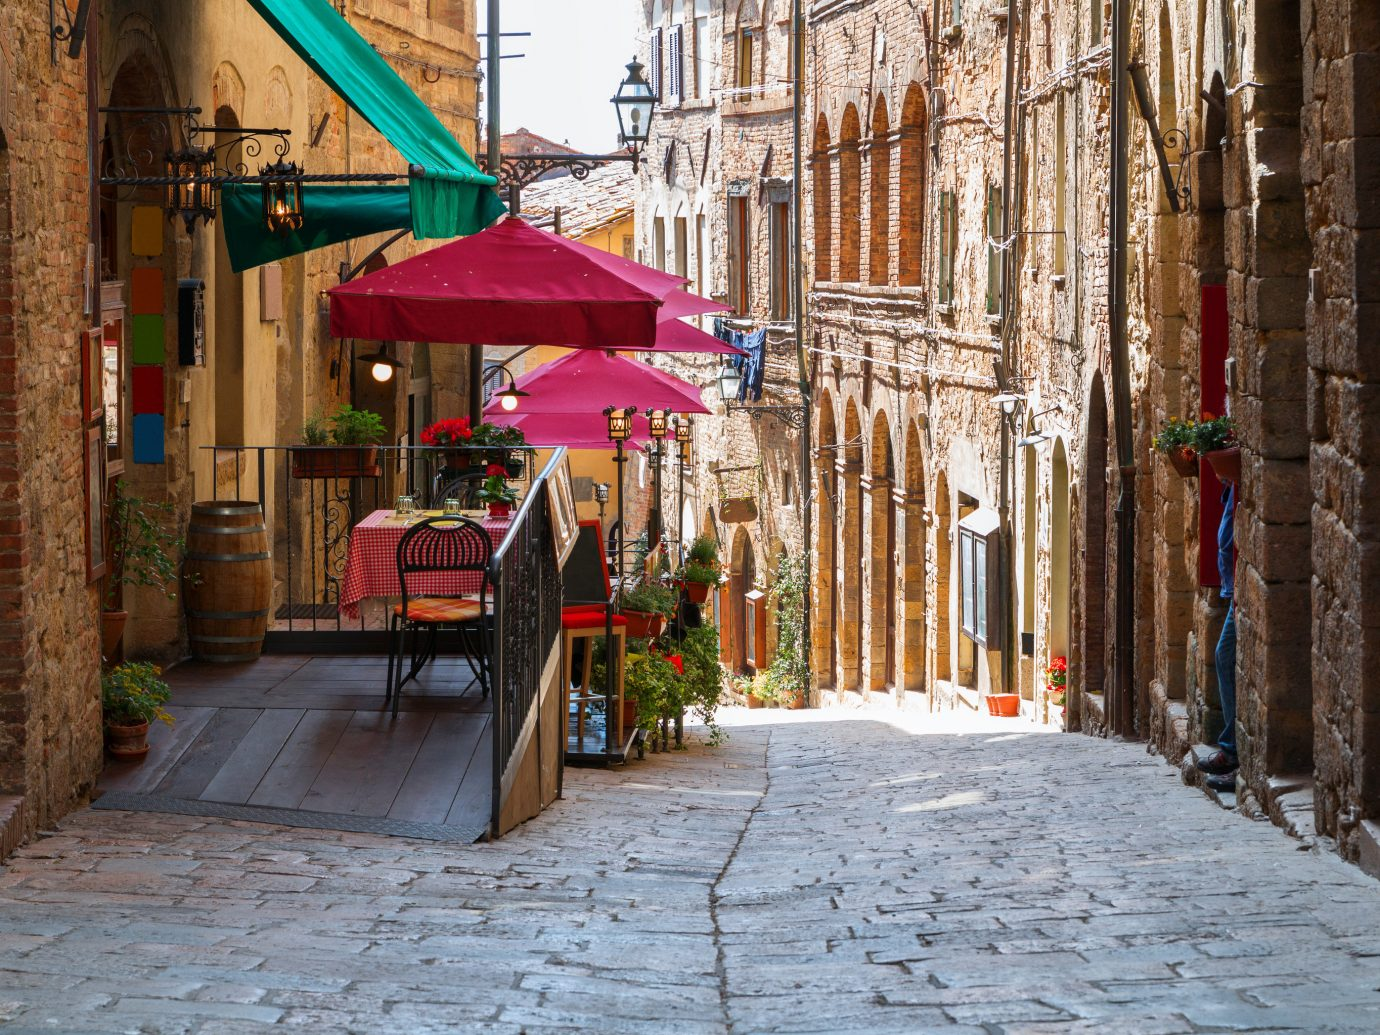 Italy Trip Ideas alley Town neighbourhood street road infrastructure urban area City window facade tourism vacation